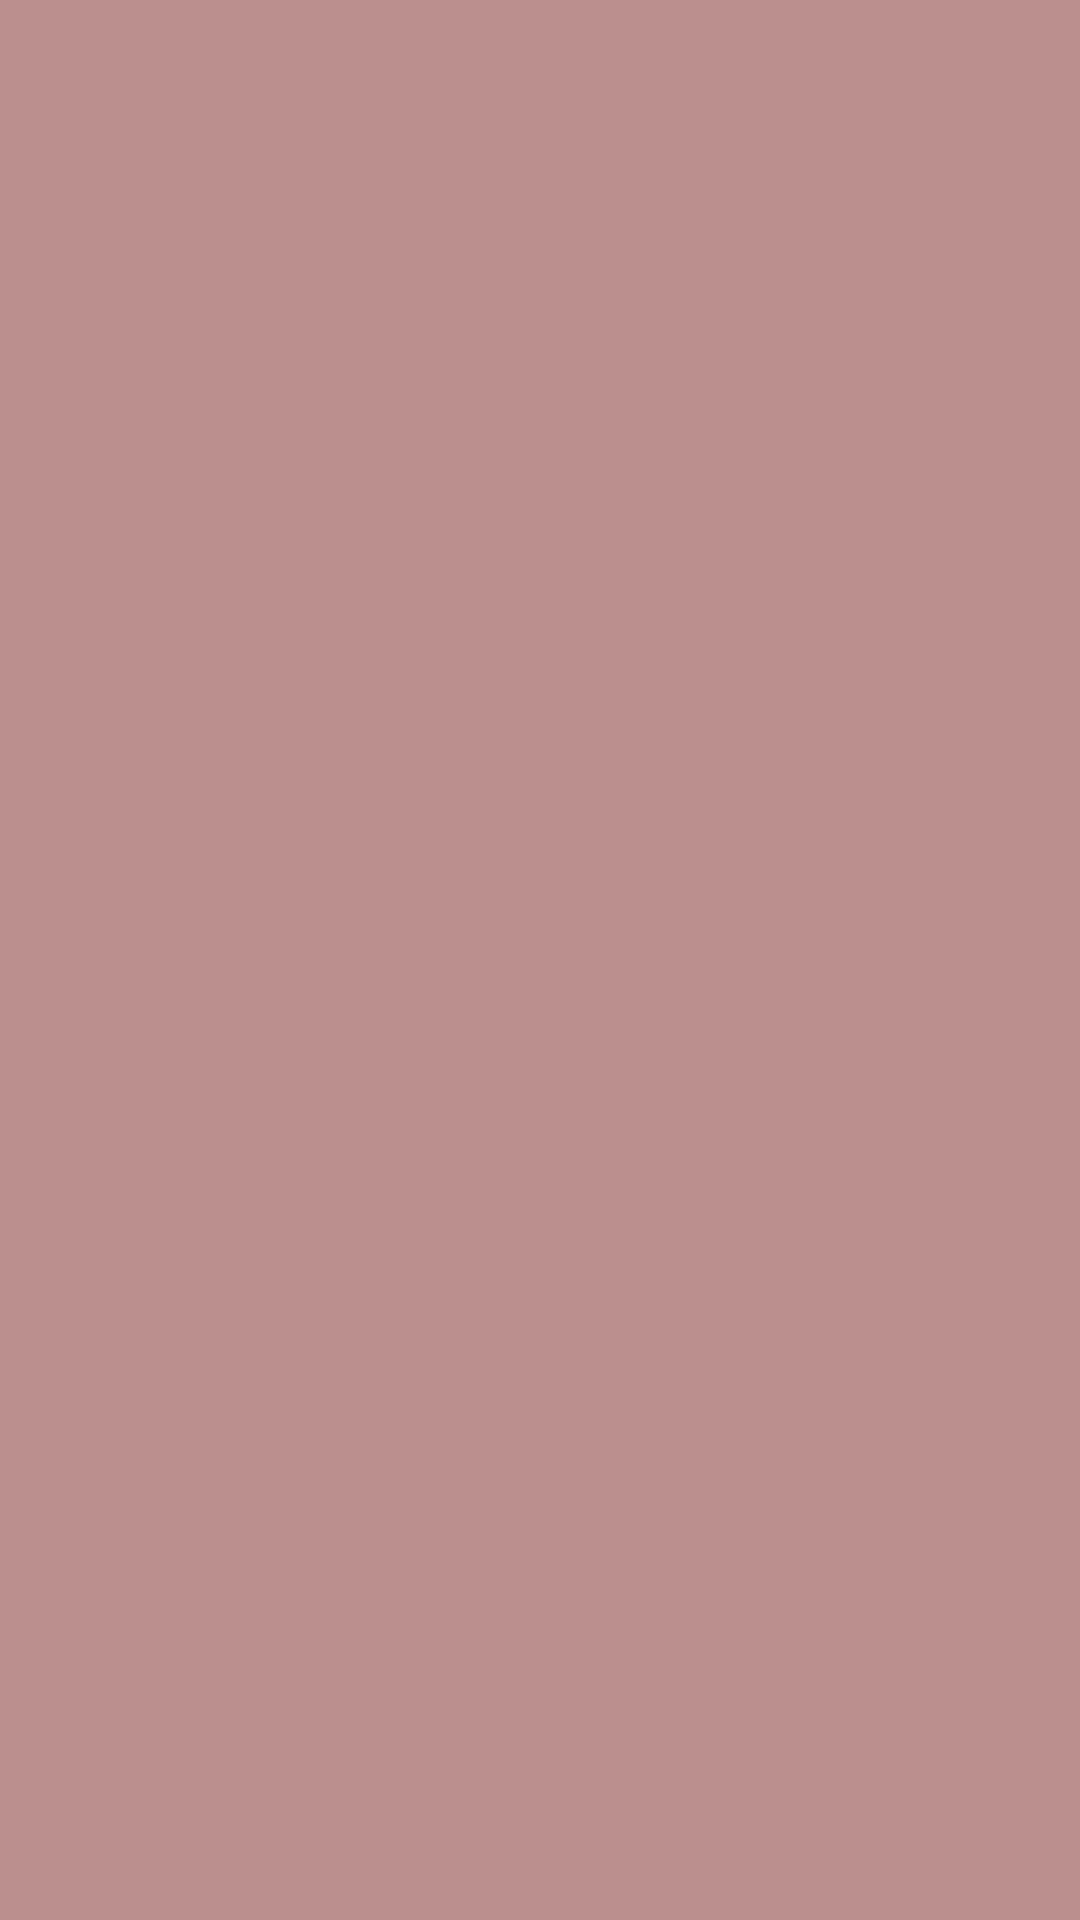 1080x1920 Rosy Brown Solid Color Background